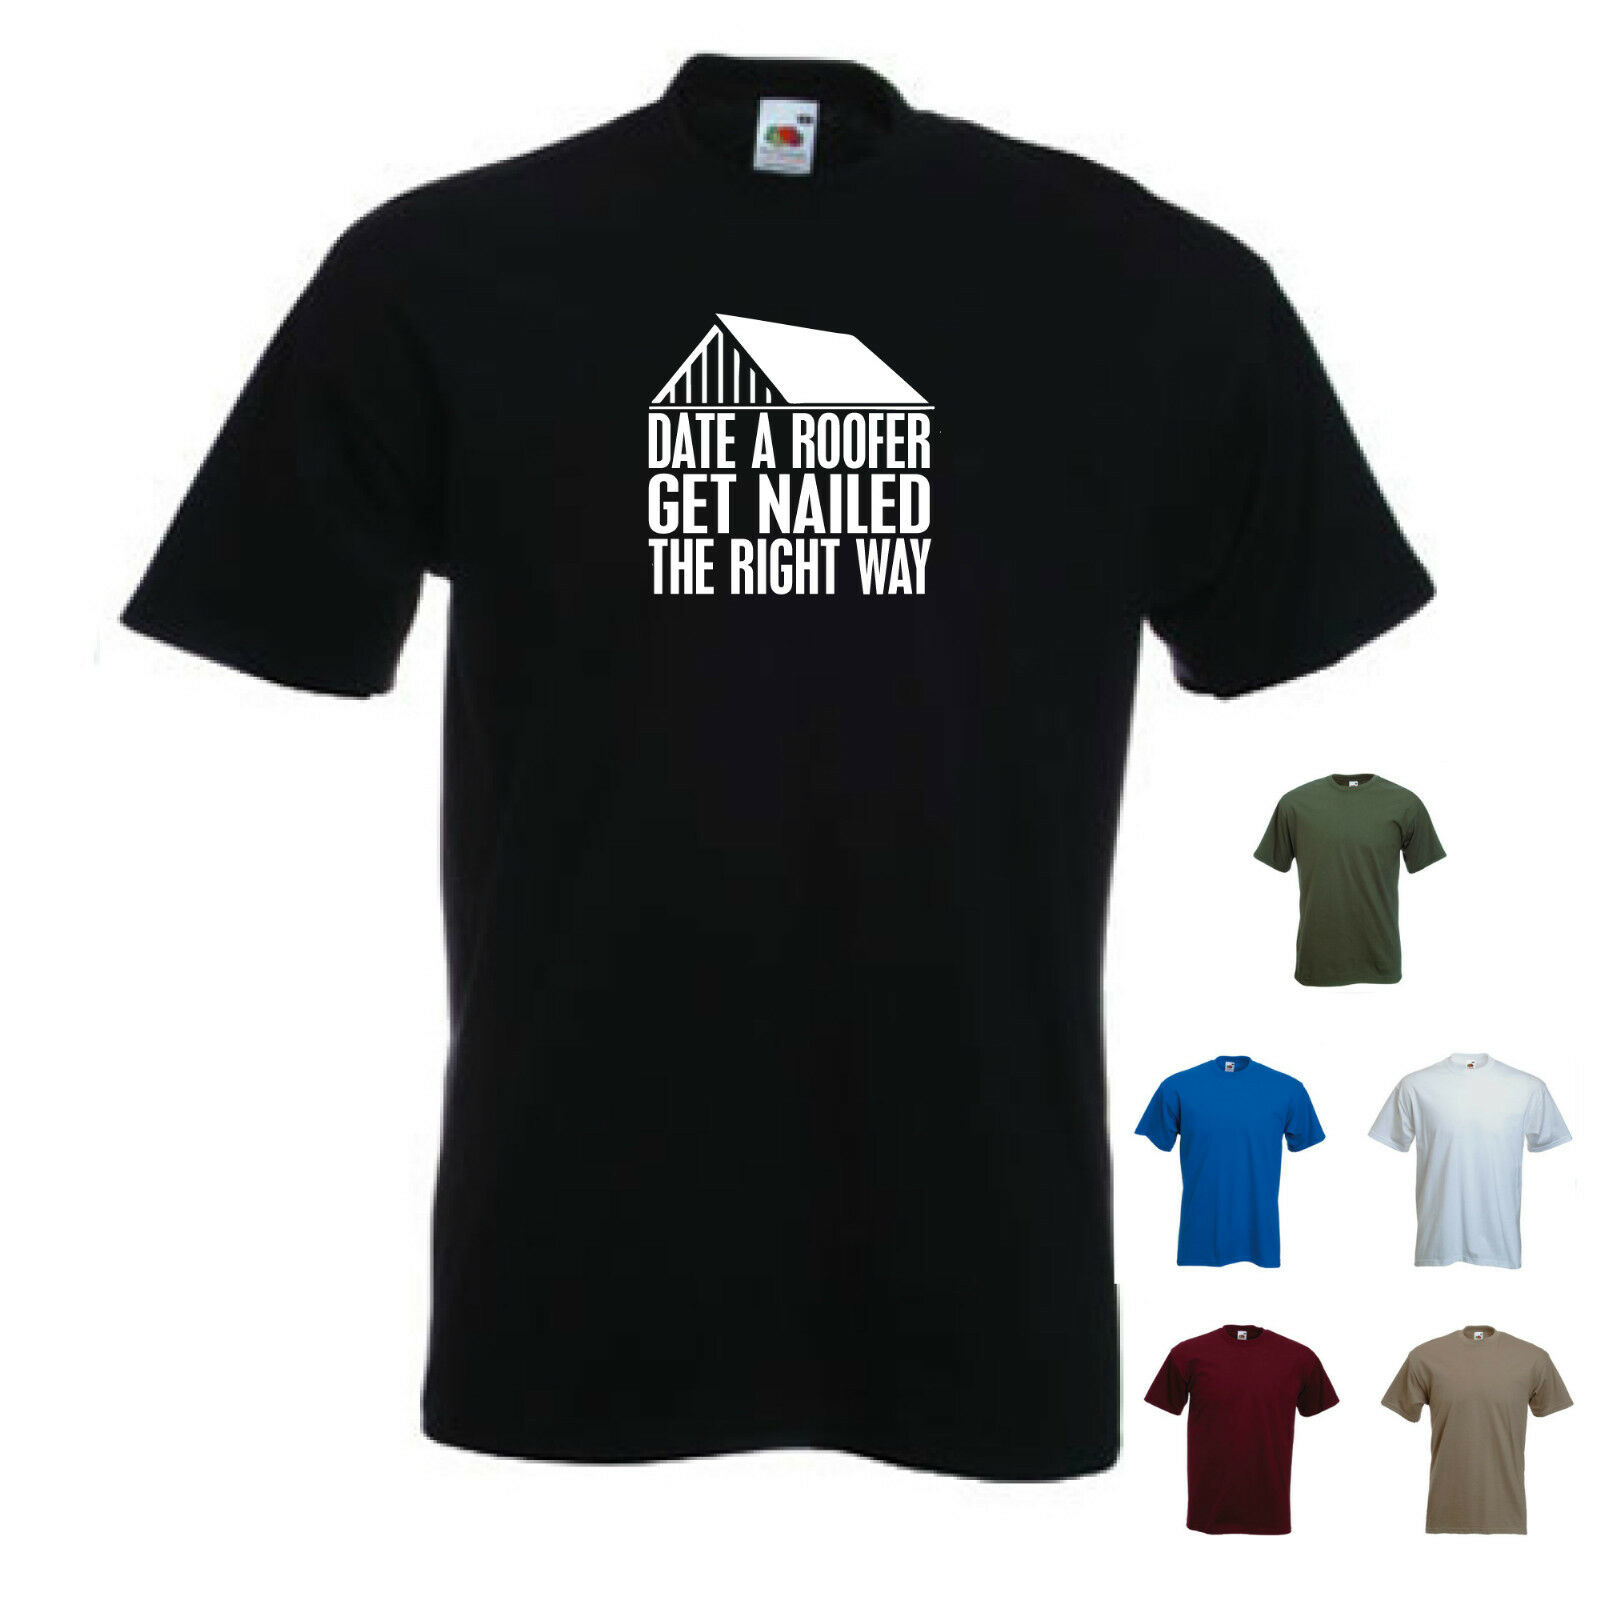 /'Date a Roofer Get Nailed the Right Way/'Funny  Roofing Birthday Present T-shirt